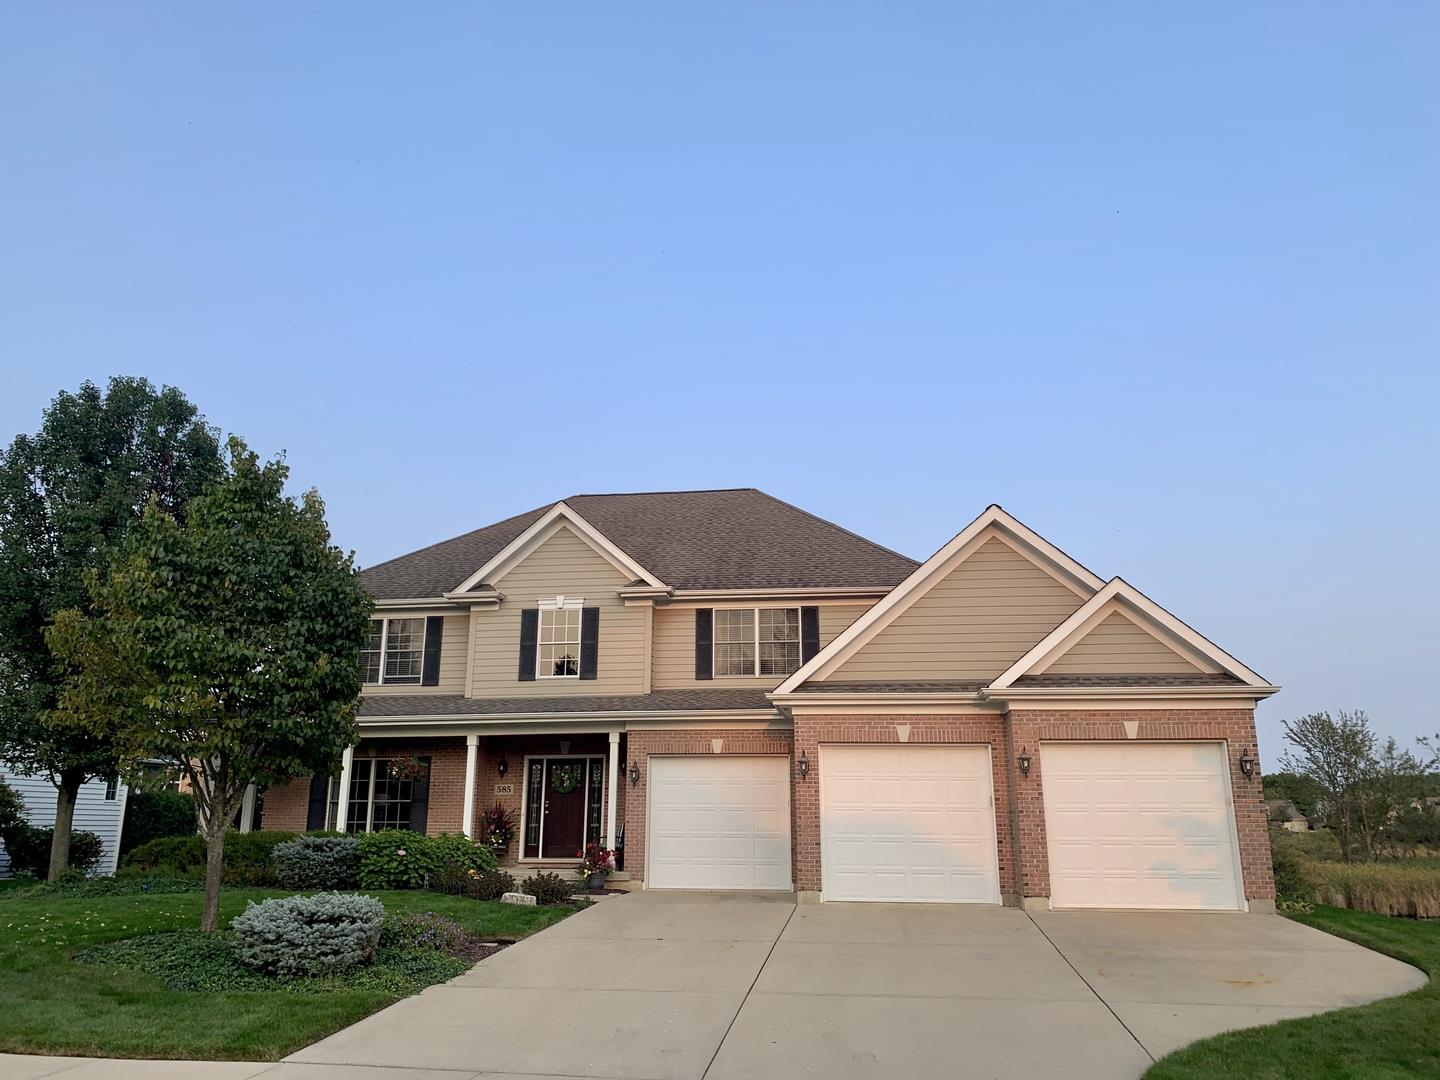 585 Iris Court, Crystal Lake, IL 60014 - #: 10878447